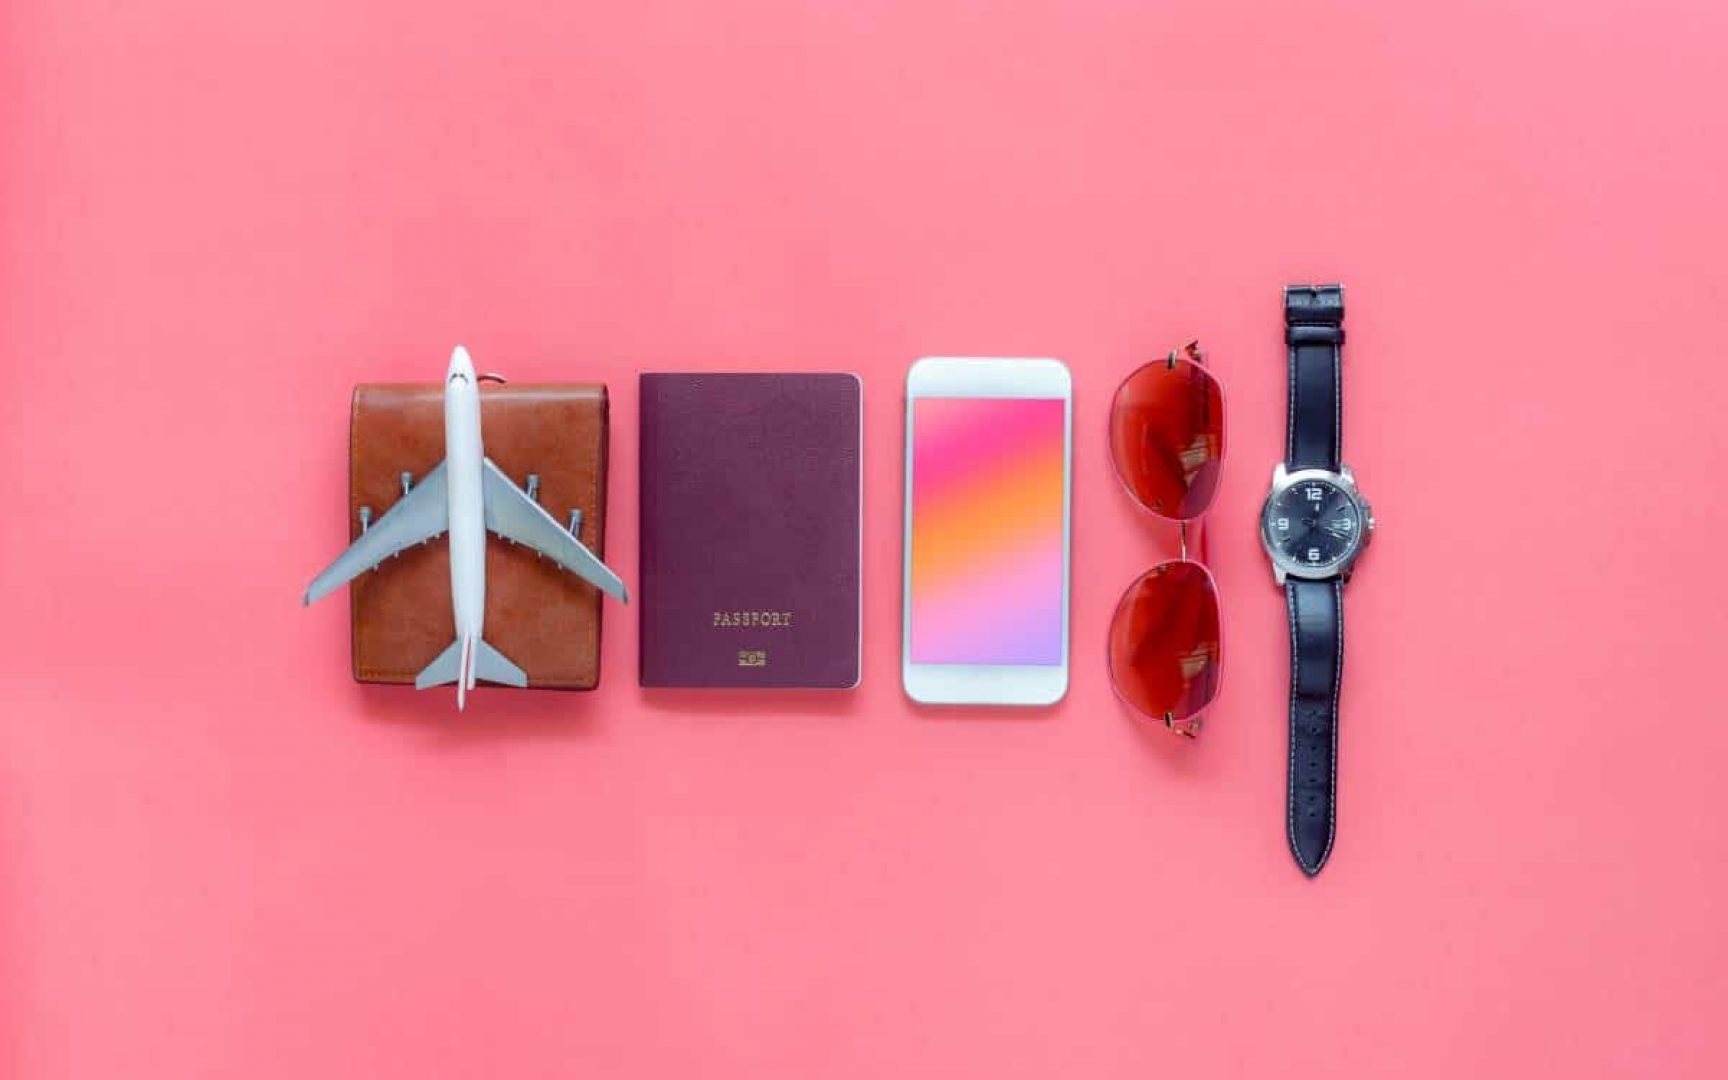 Pink background with small items including a toy airplane on a wallet, passport, iPhone, sunglasses and a watch